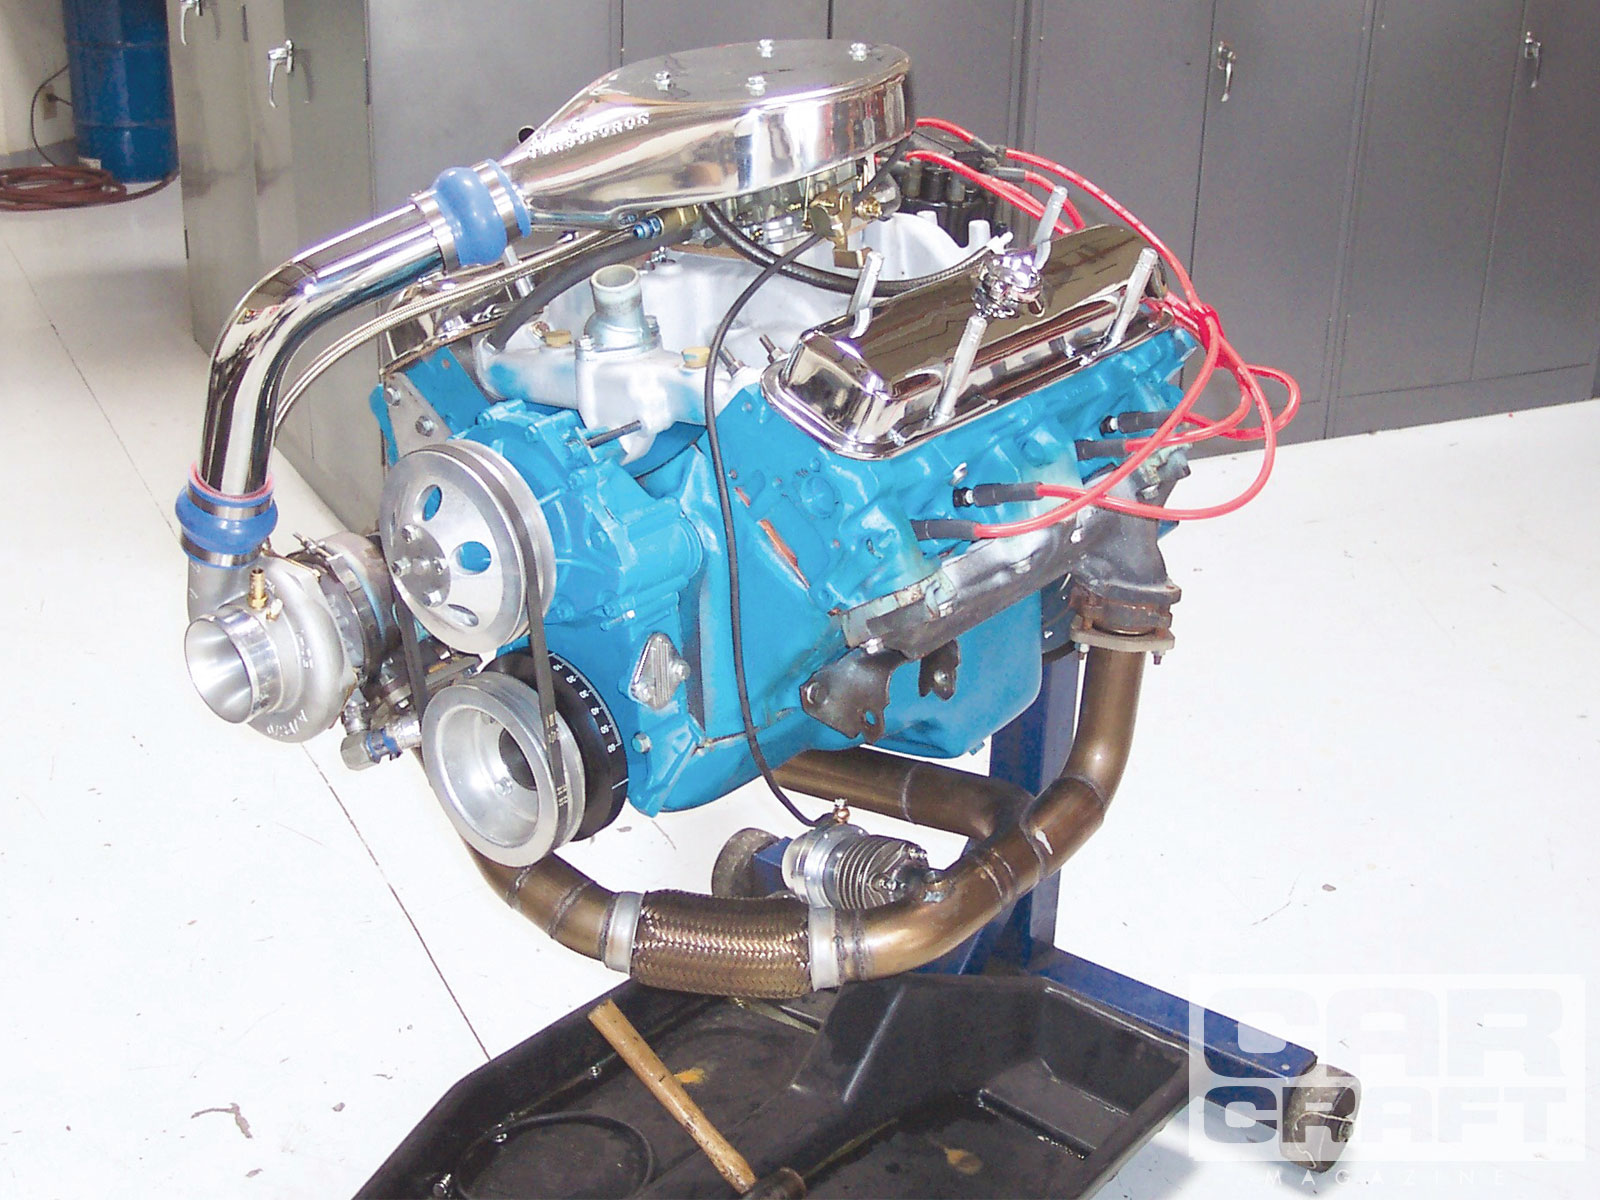 hight resolution of ccrp 0912 01 turbo pontiac 400 engine build